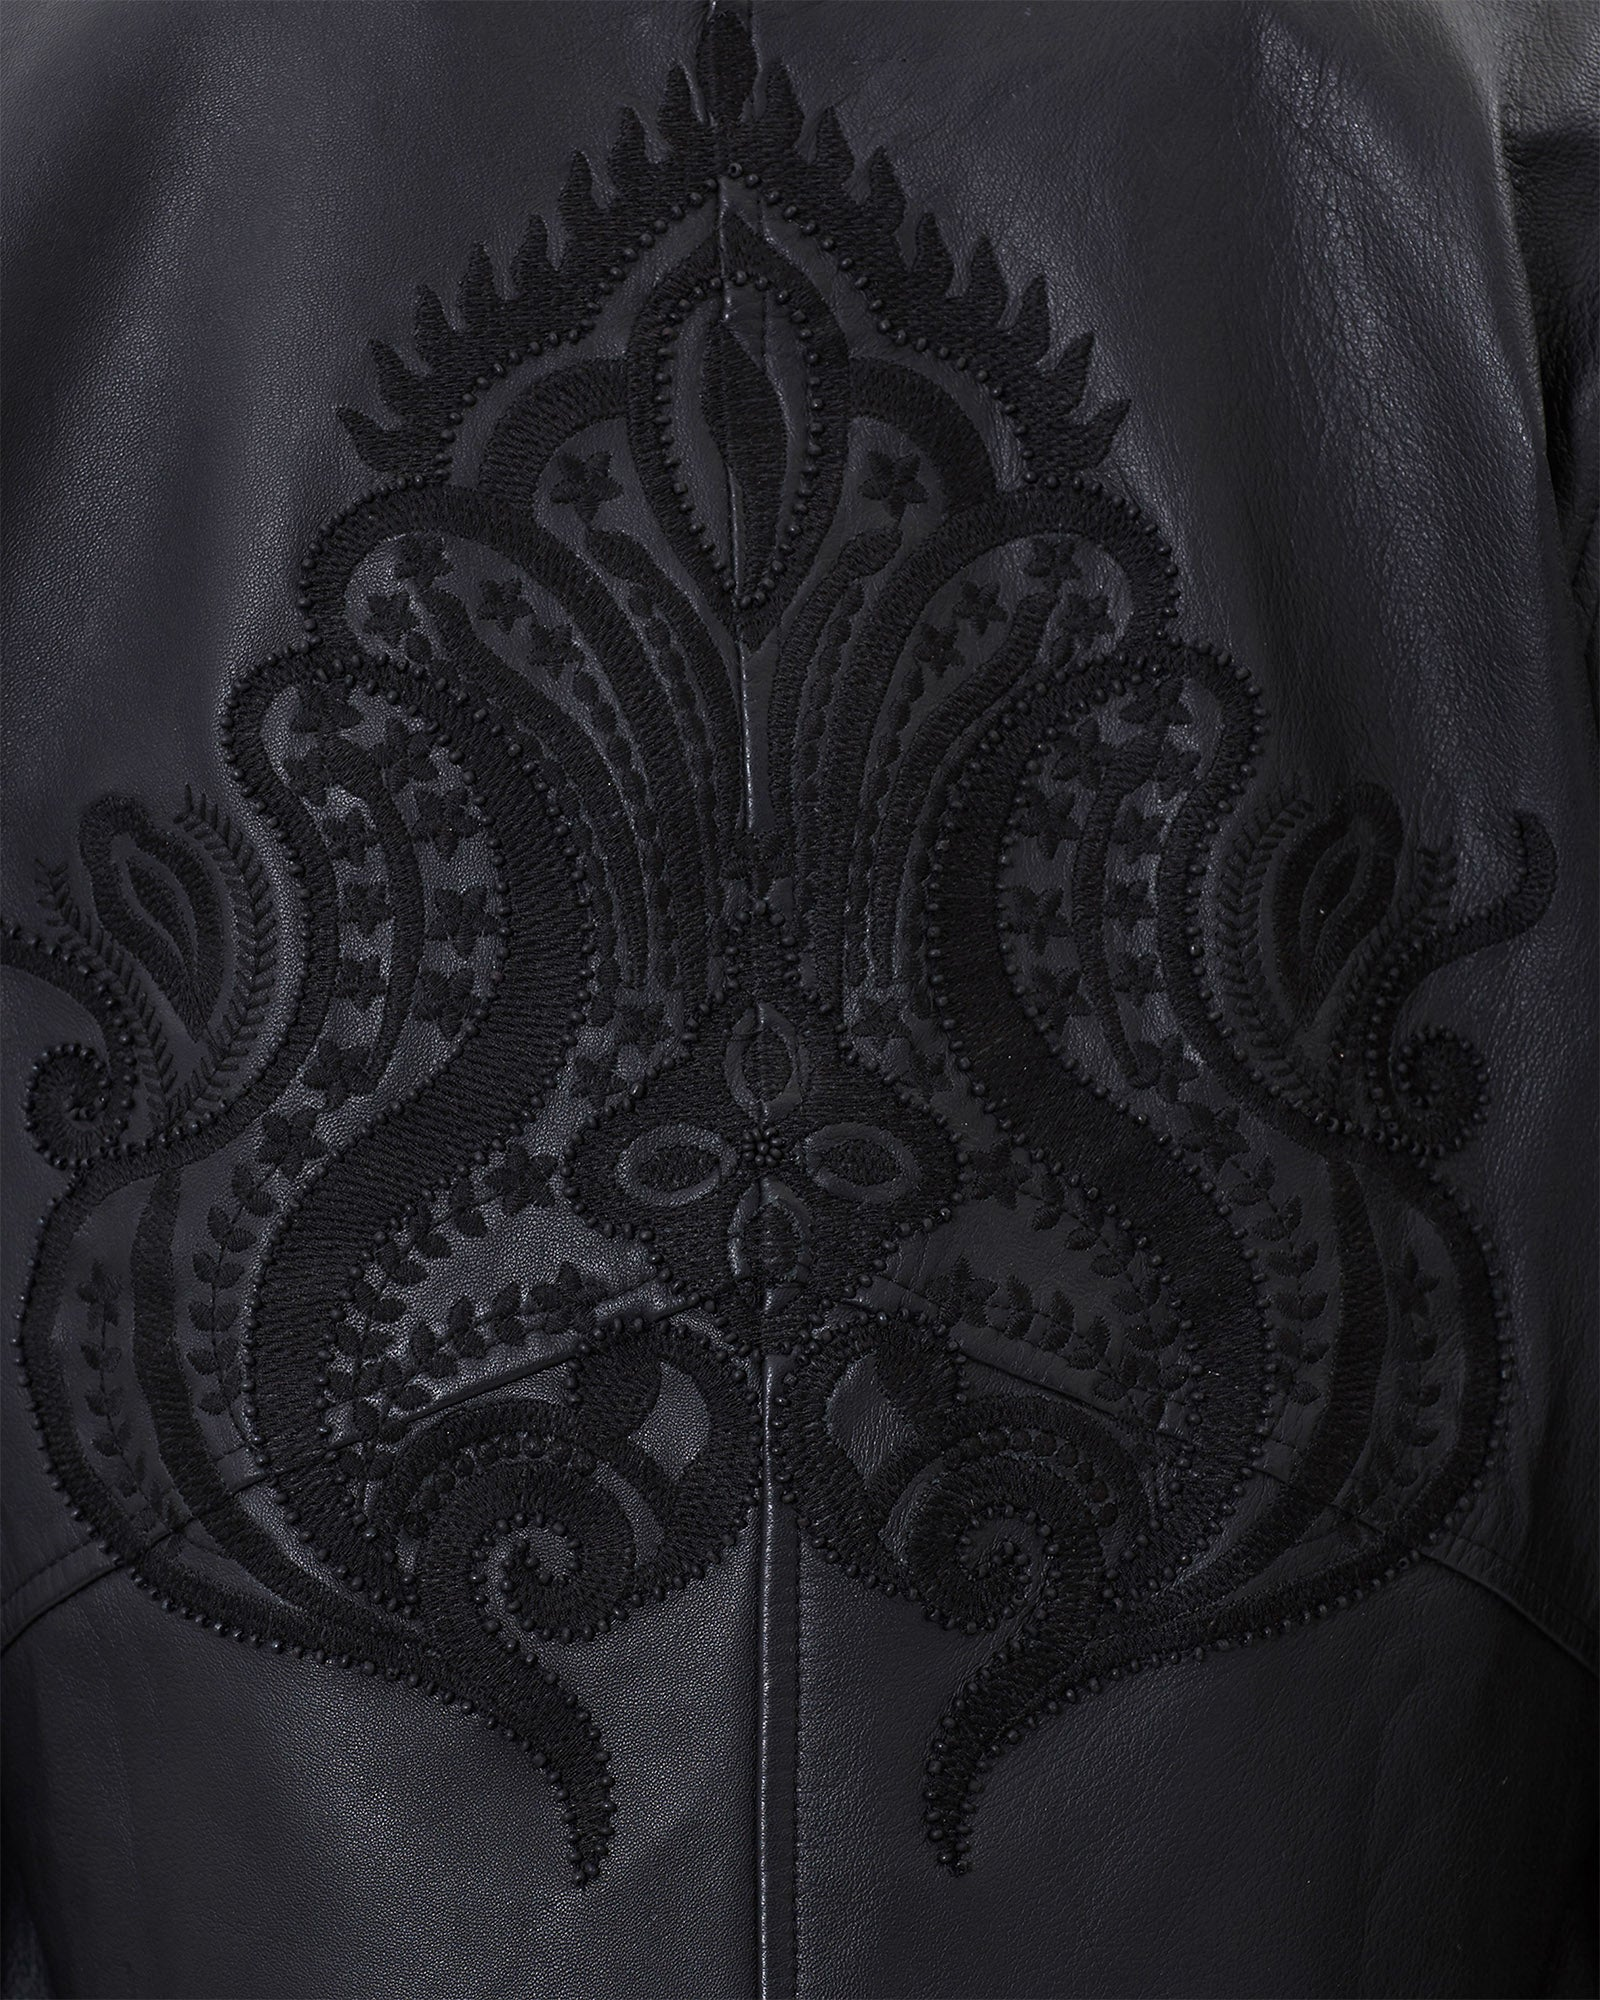 THE BEADED SLEEVE MOTOTCYCLE LEATHER JACKET